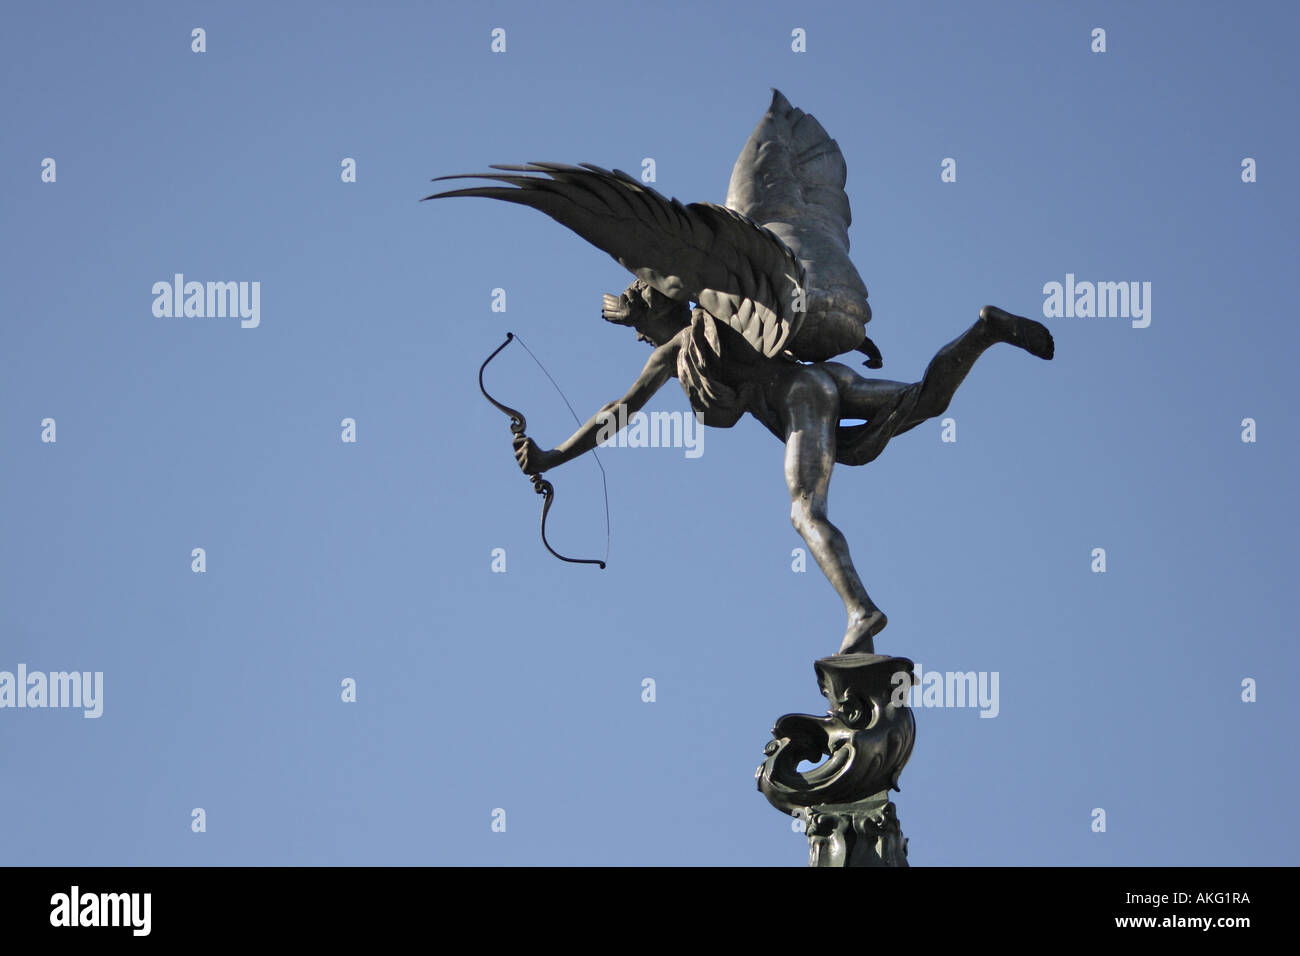 Eros statue on top of fountain at Picadilly Circus in London. - Stock Image